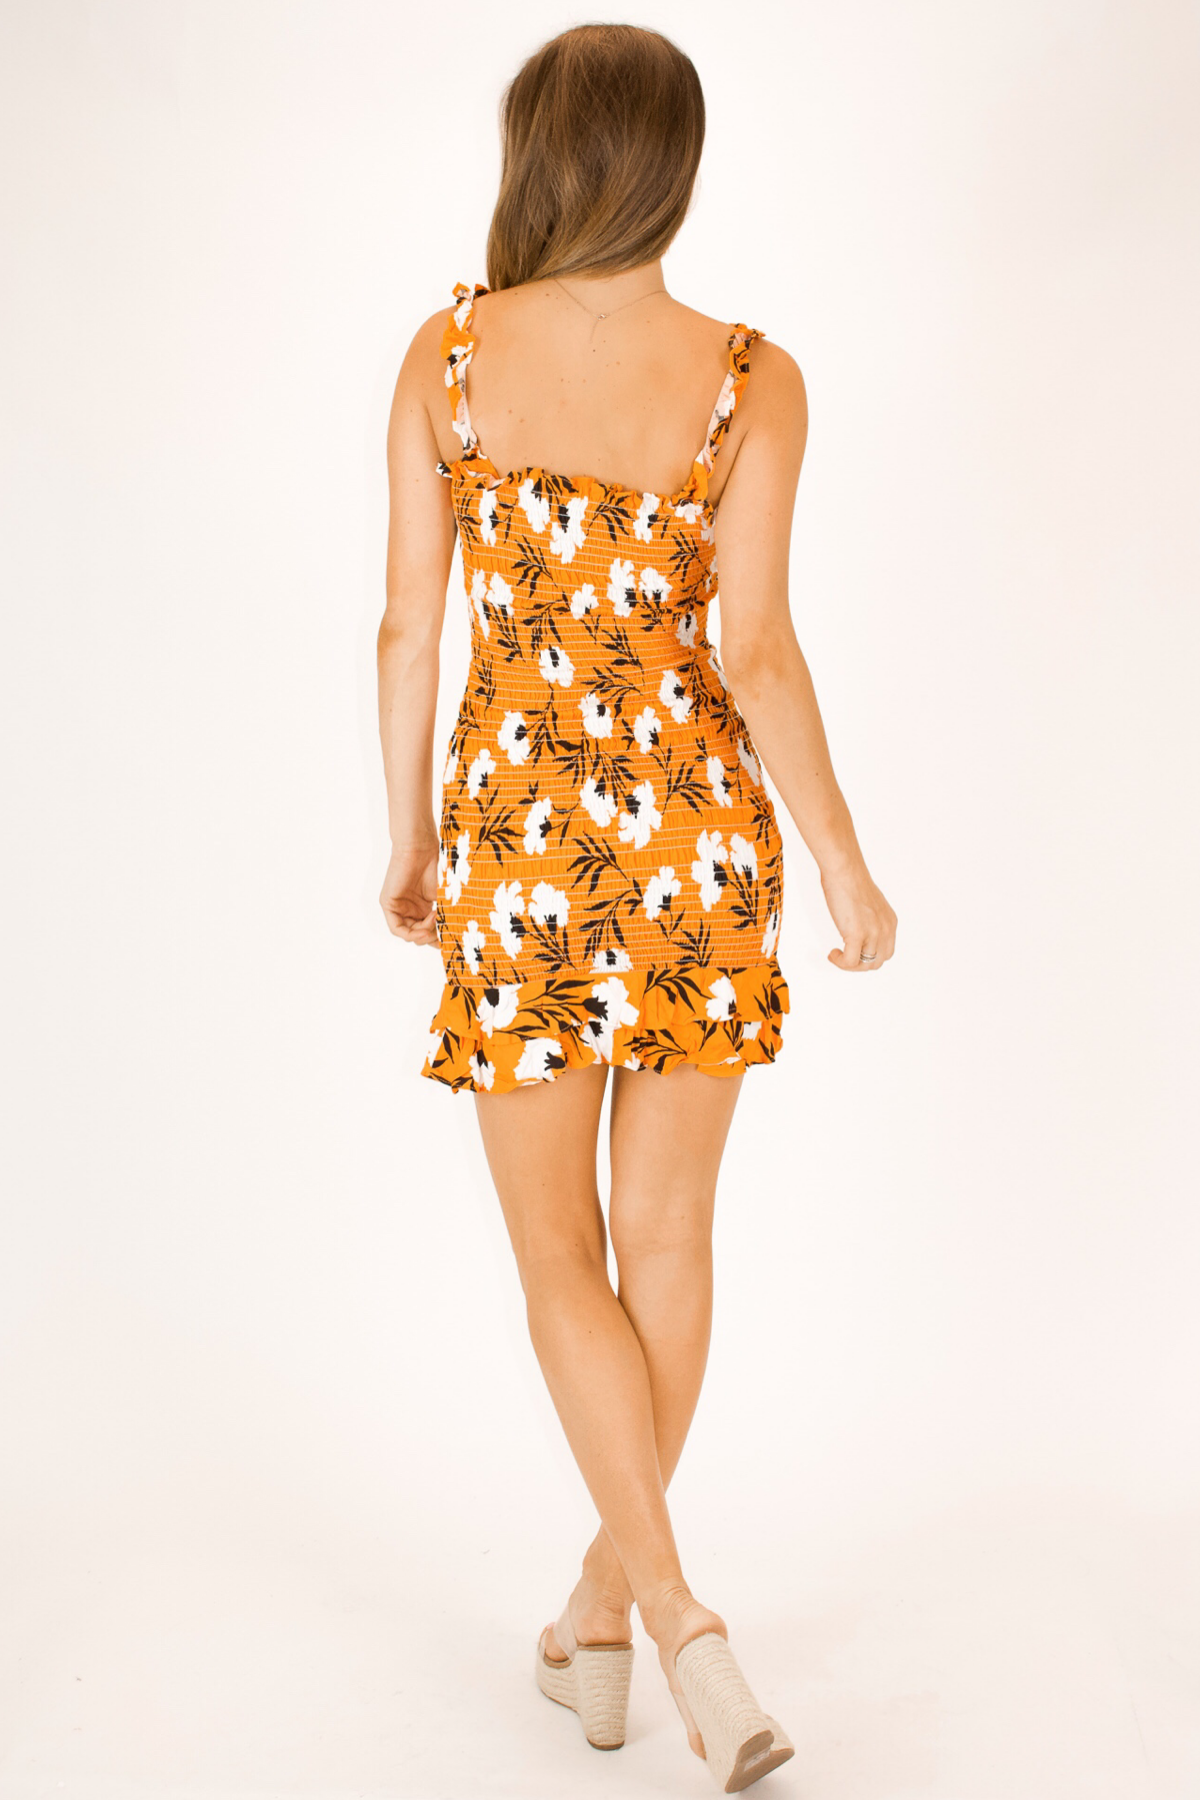 ORANGE BLOSSOM SMOCKED MINI DRESS